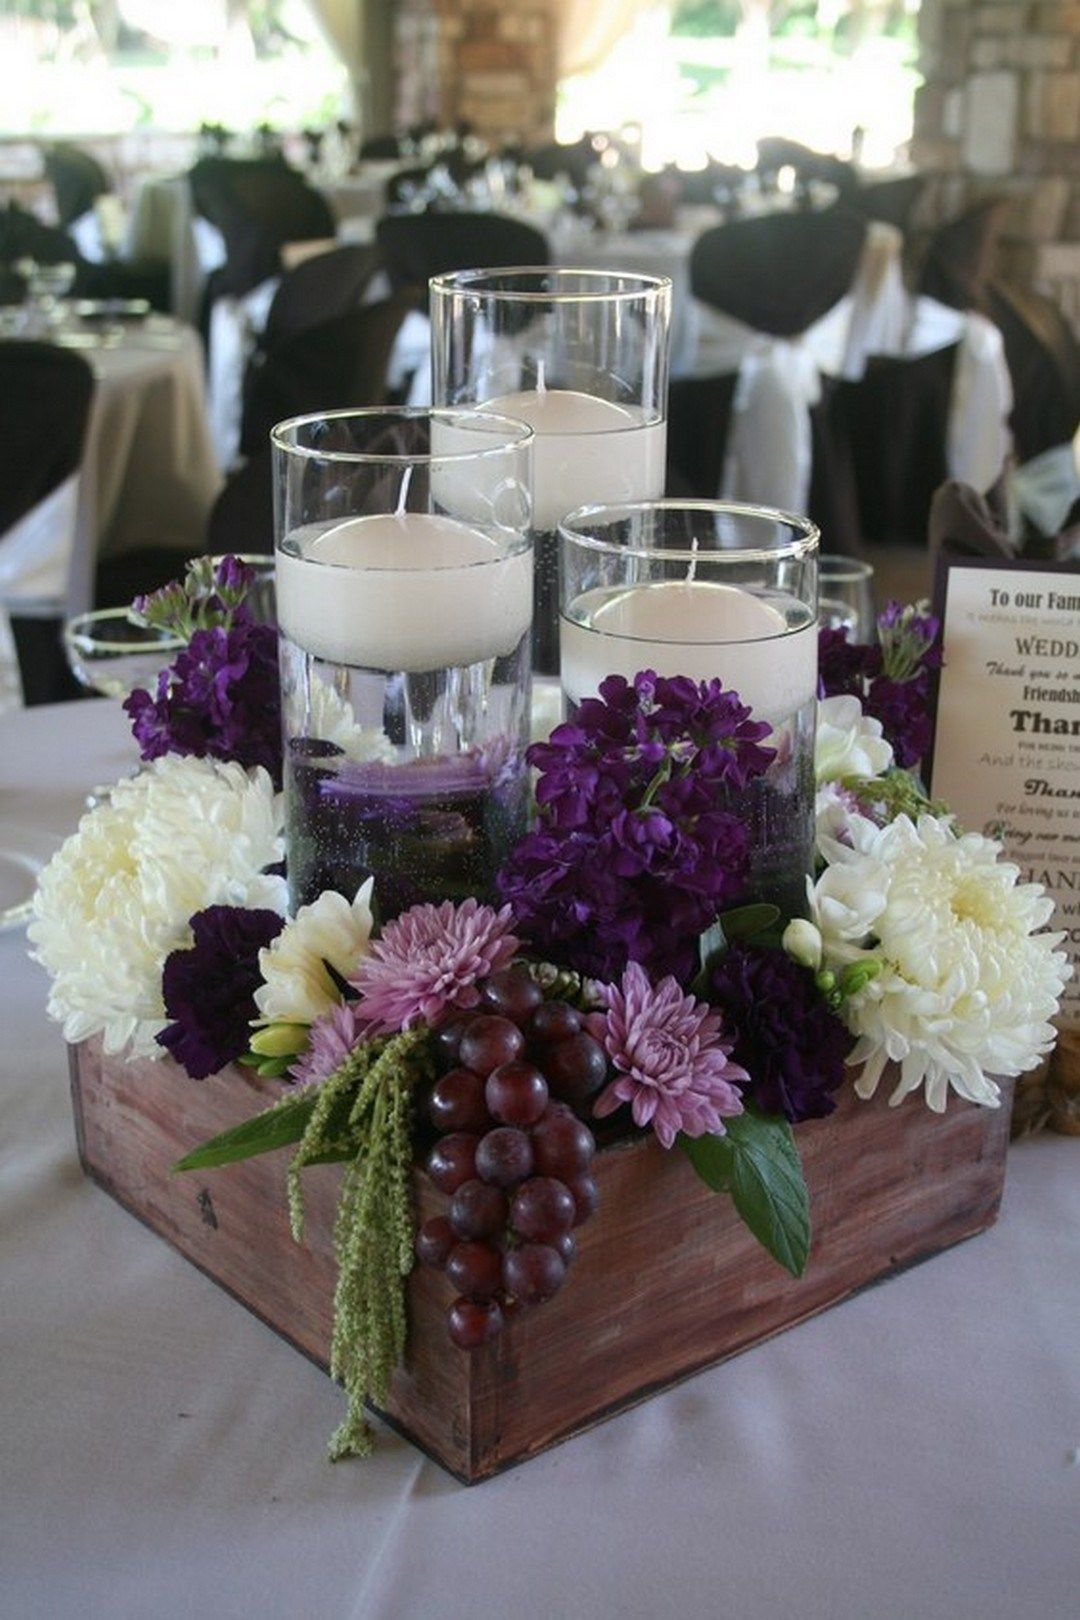 Diy wedding ideas ways to save budget for your big day